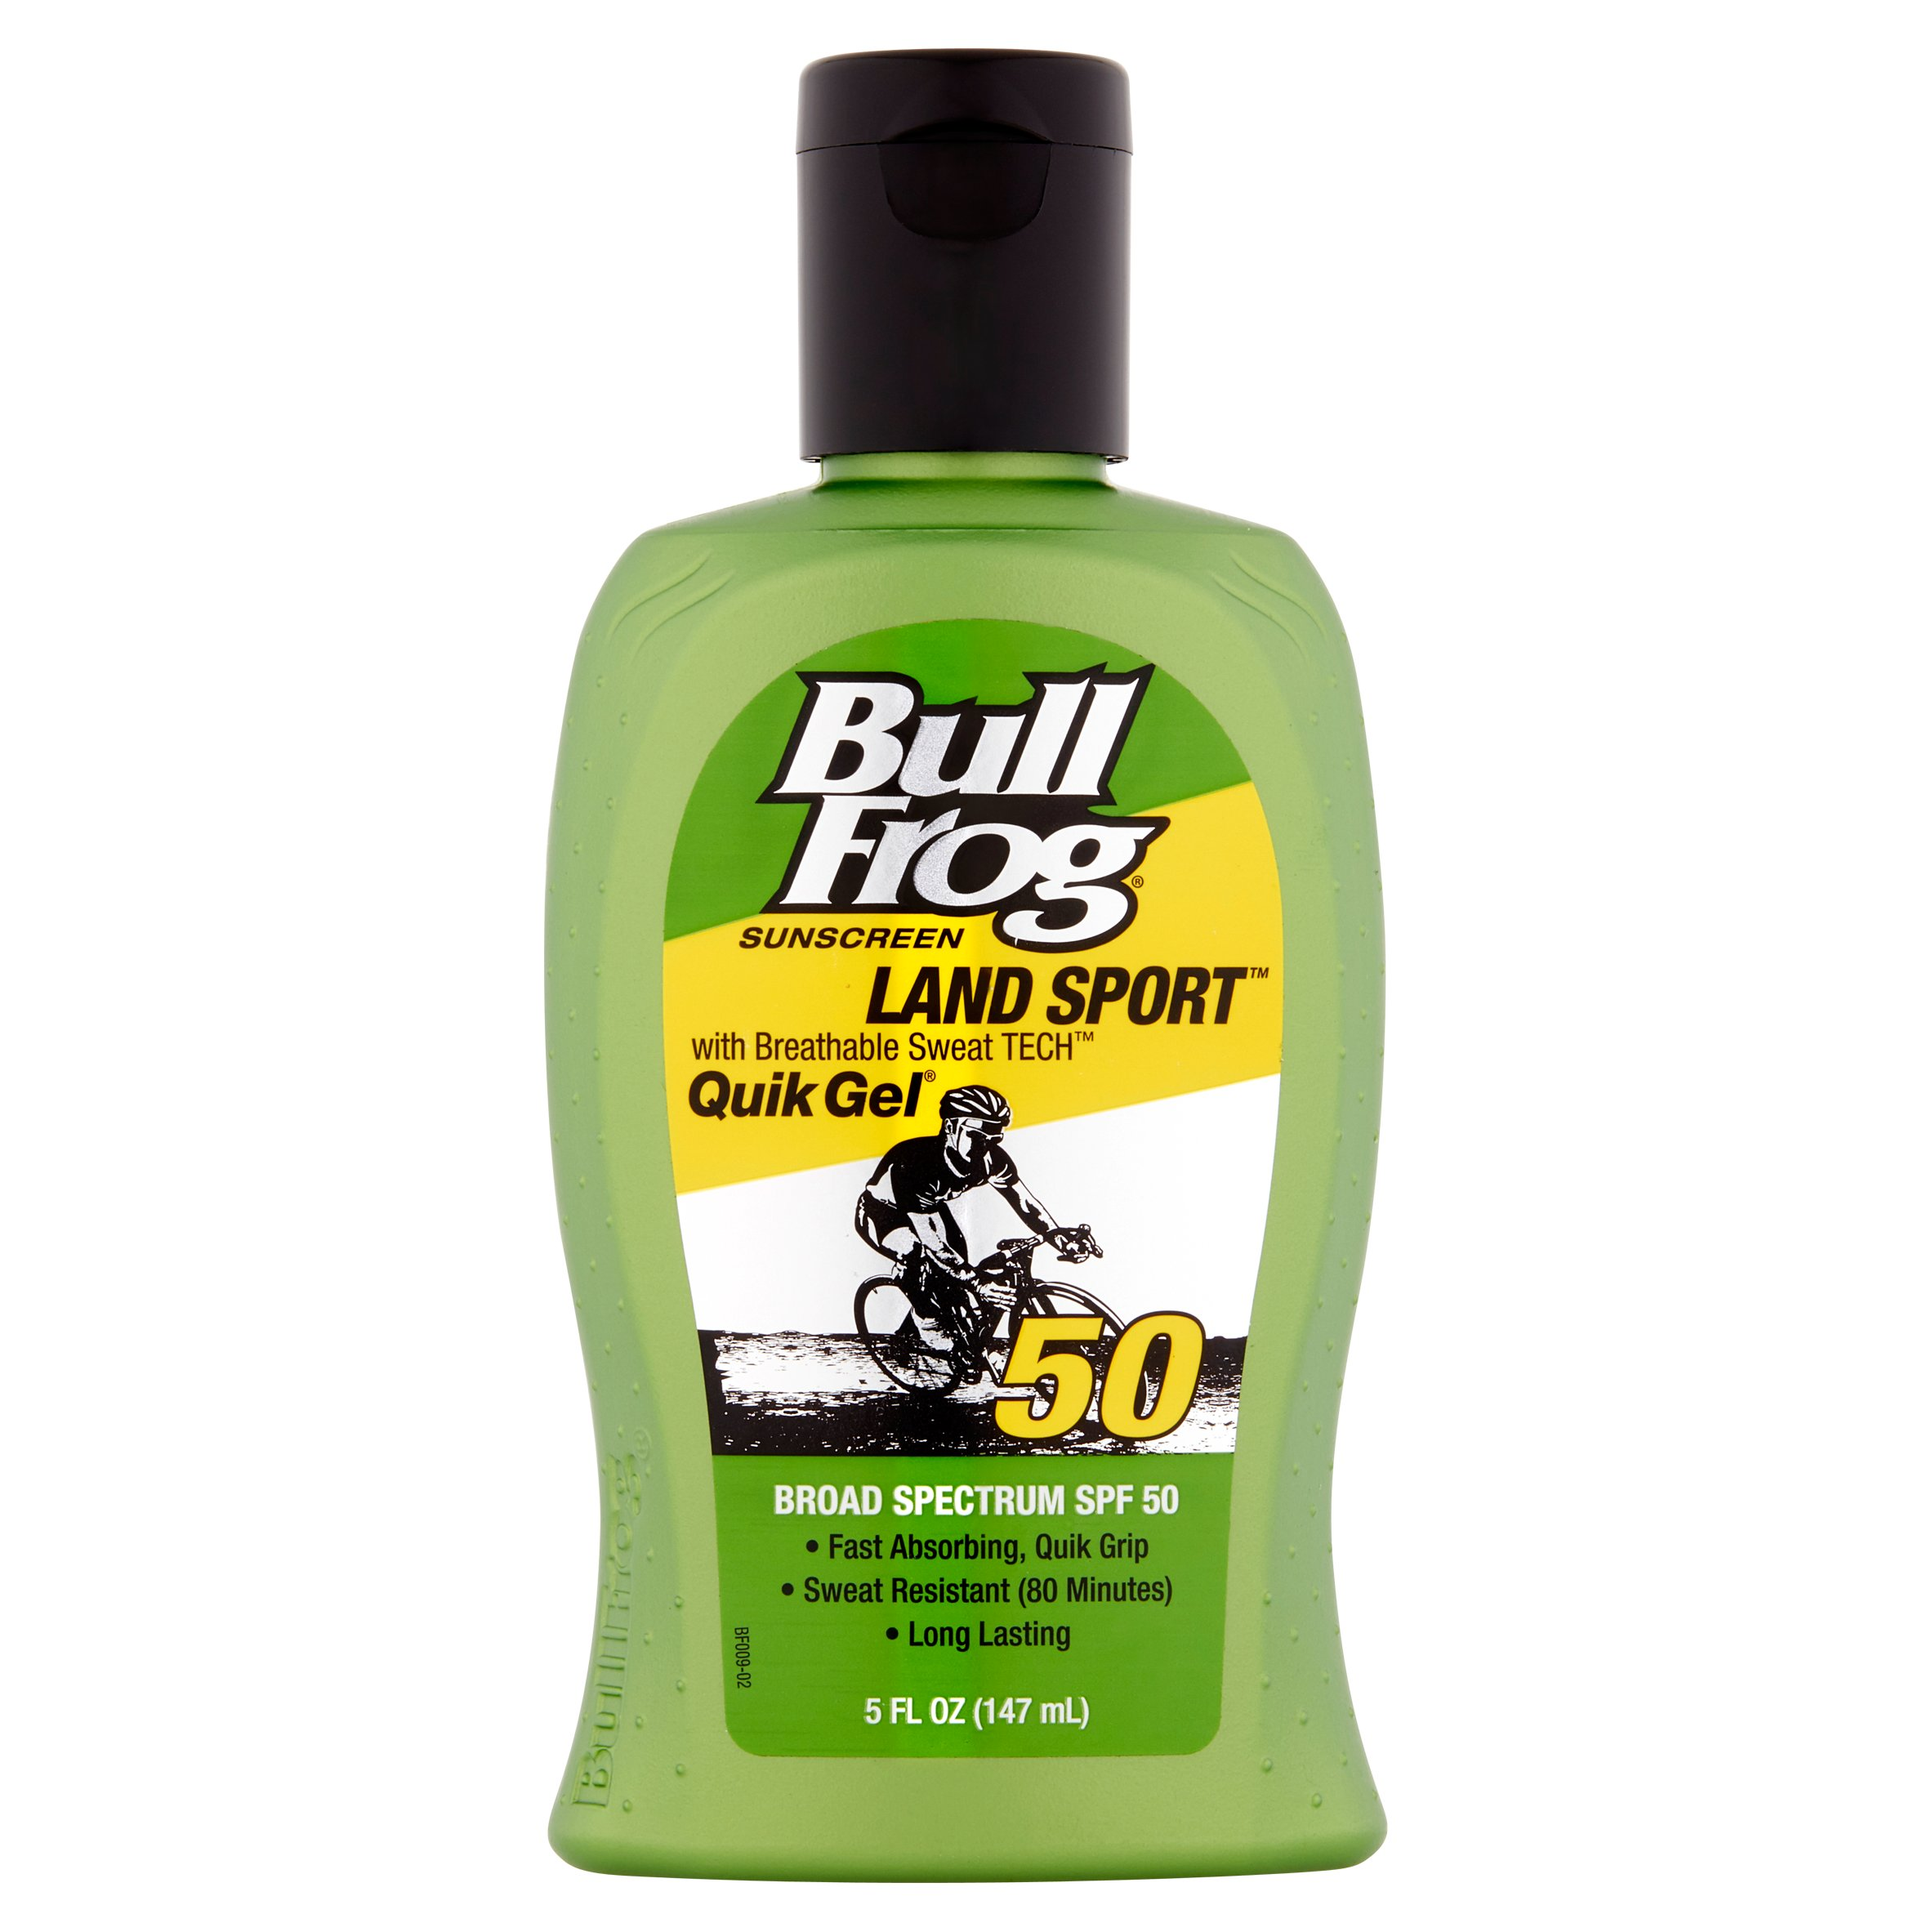 Bull Frog Land Sport Quik Gel Sunscreen